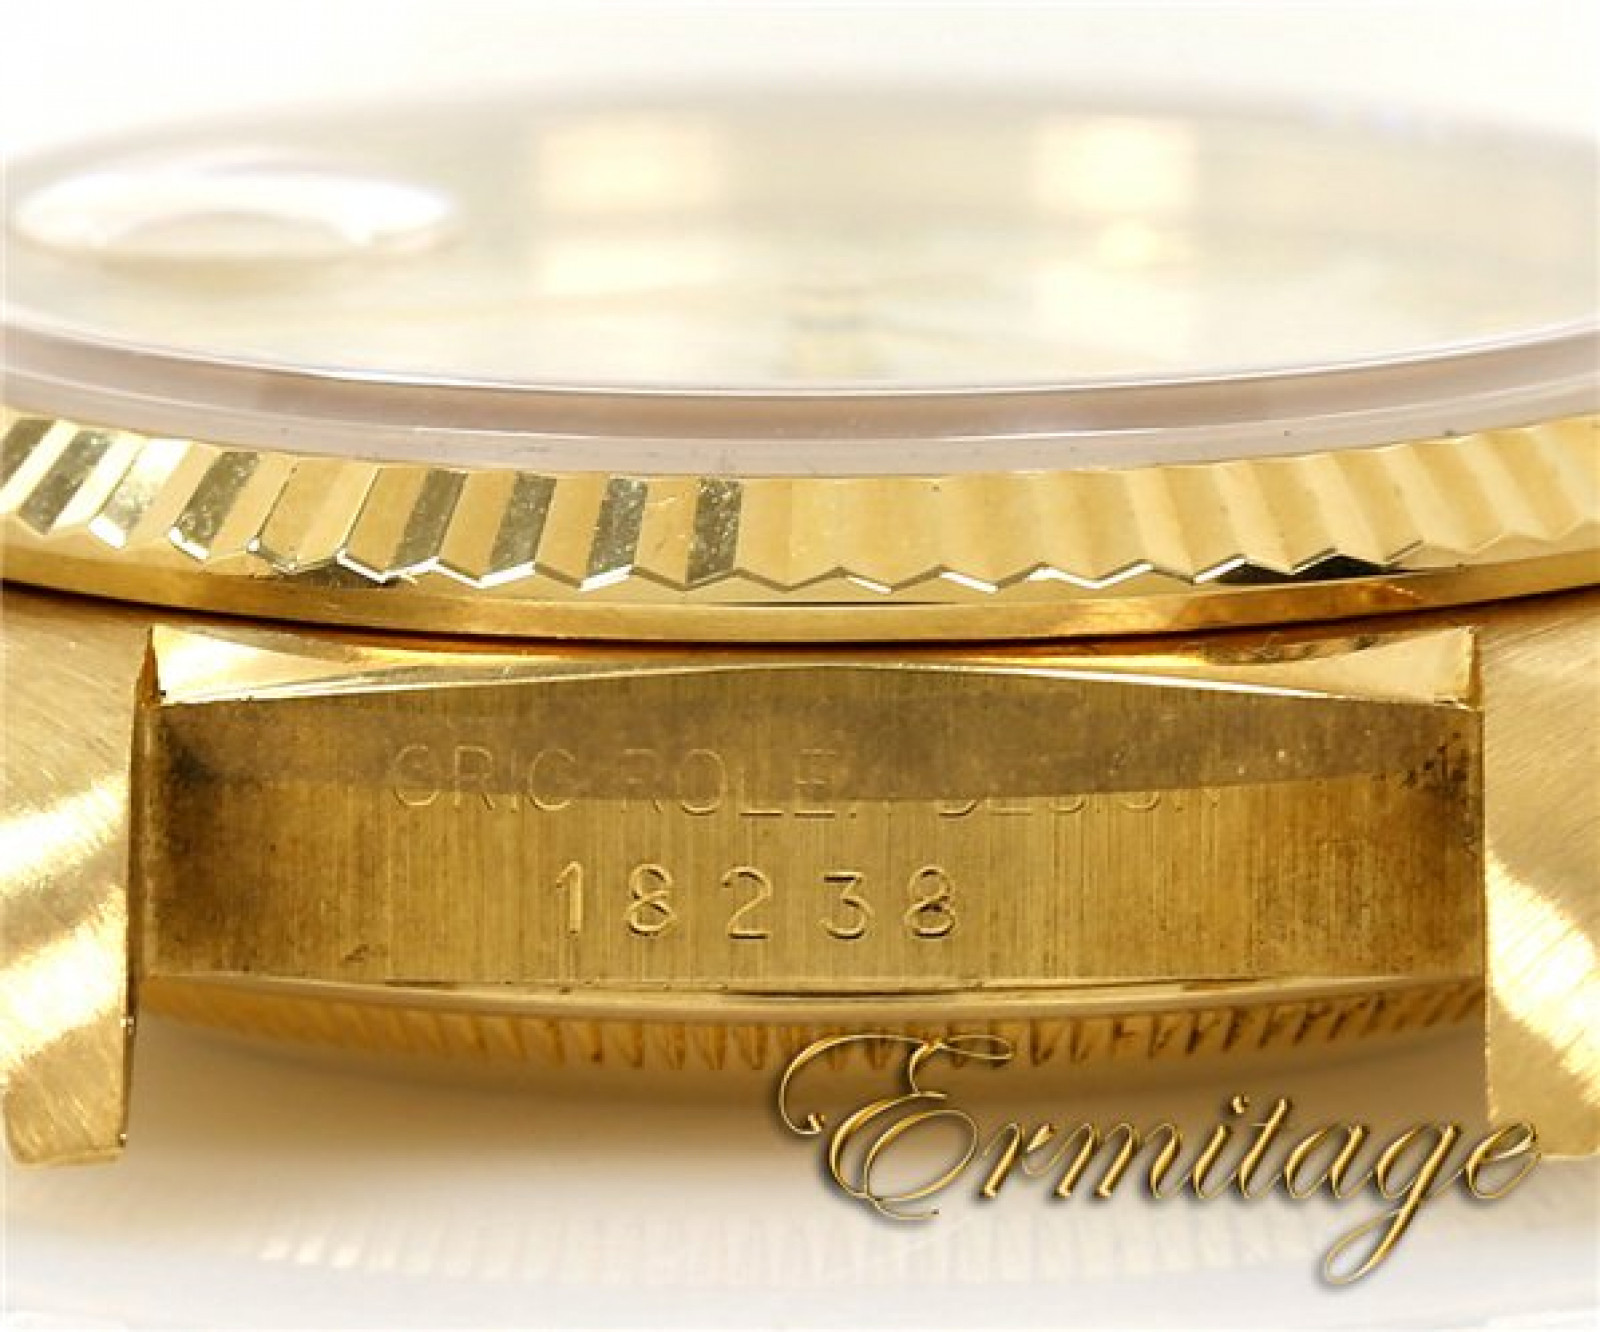 Pre-Owned Rolex Day-Date 18238 with White Pyramid Dial